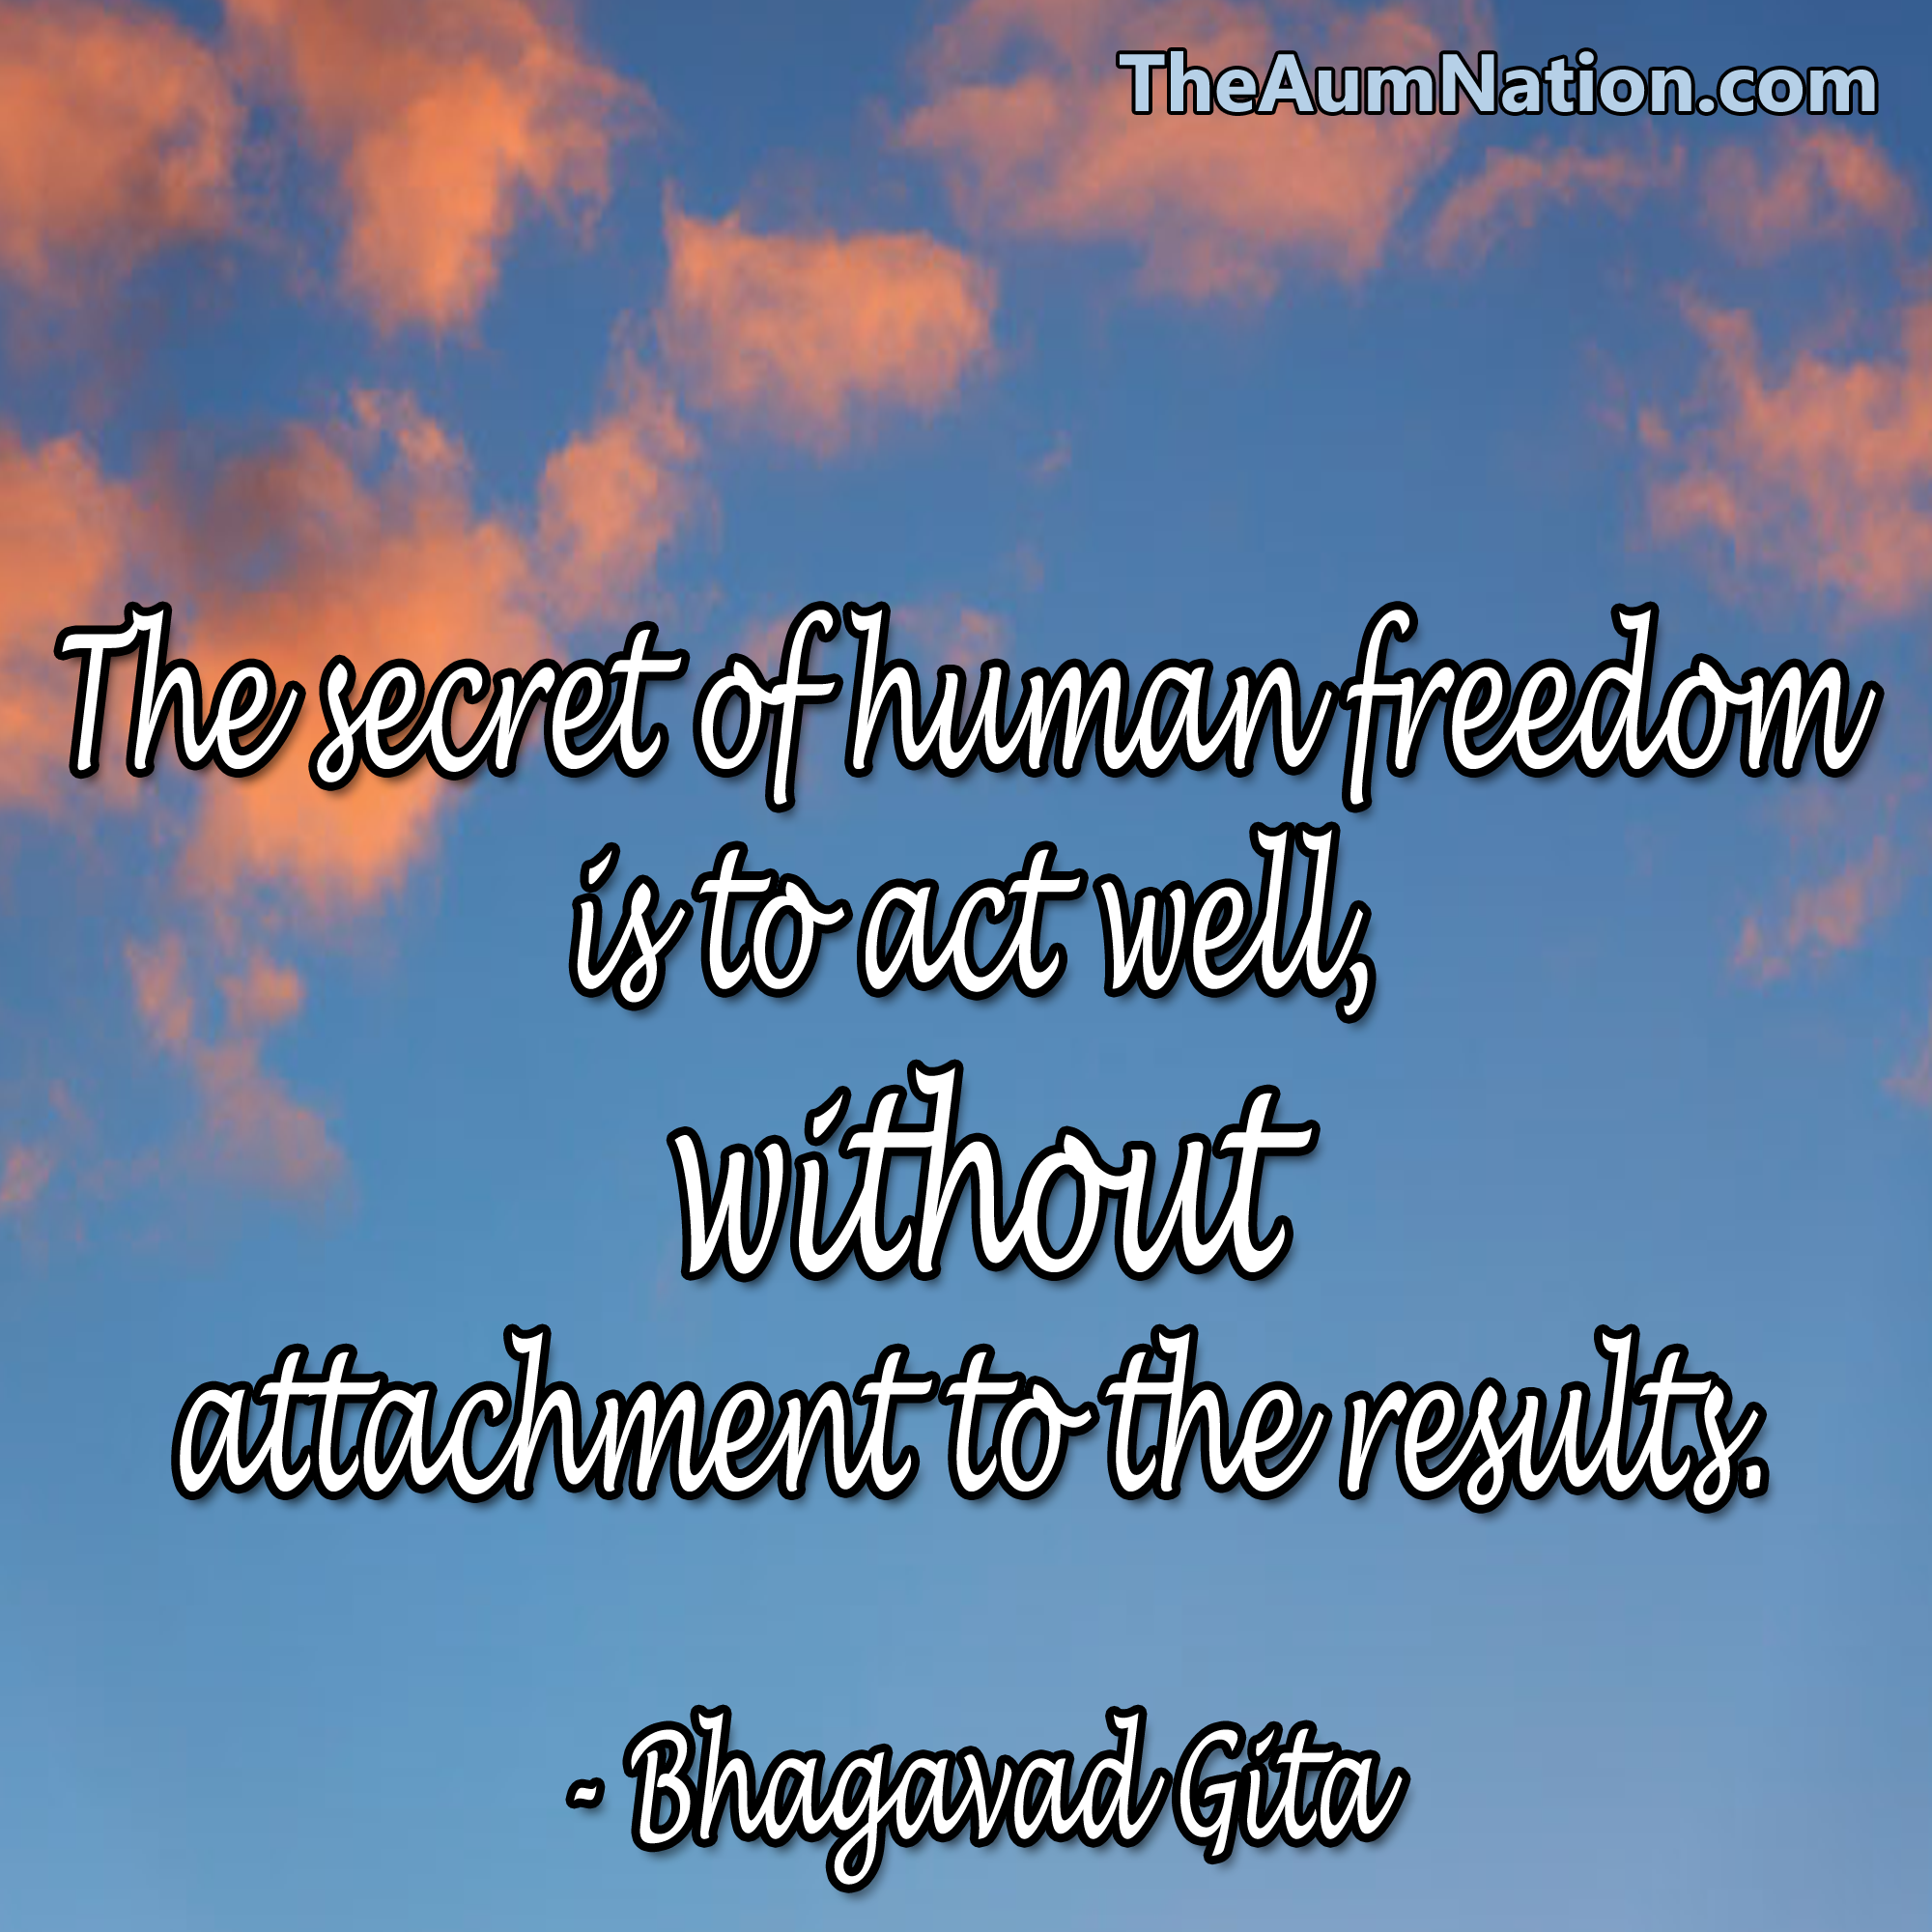 Life Without Freedom Quotes: The Secret To Human Freedom Is To Act Well, Without